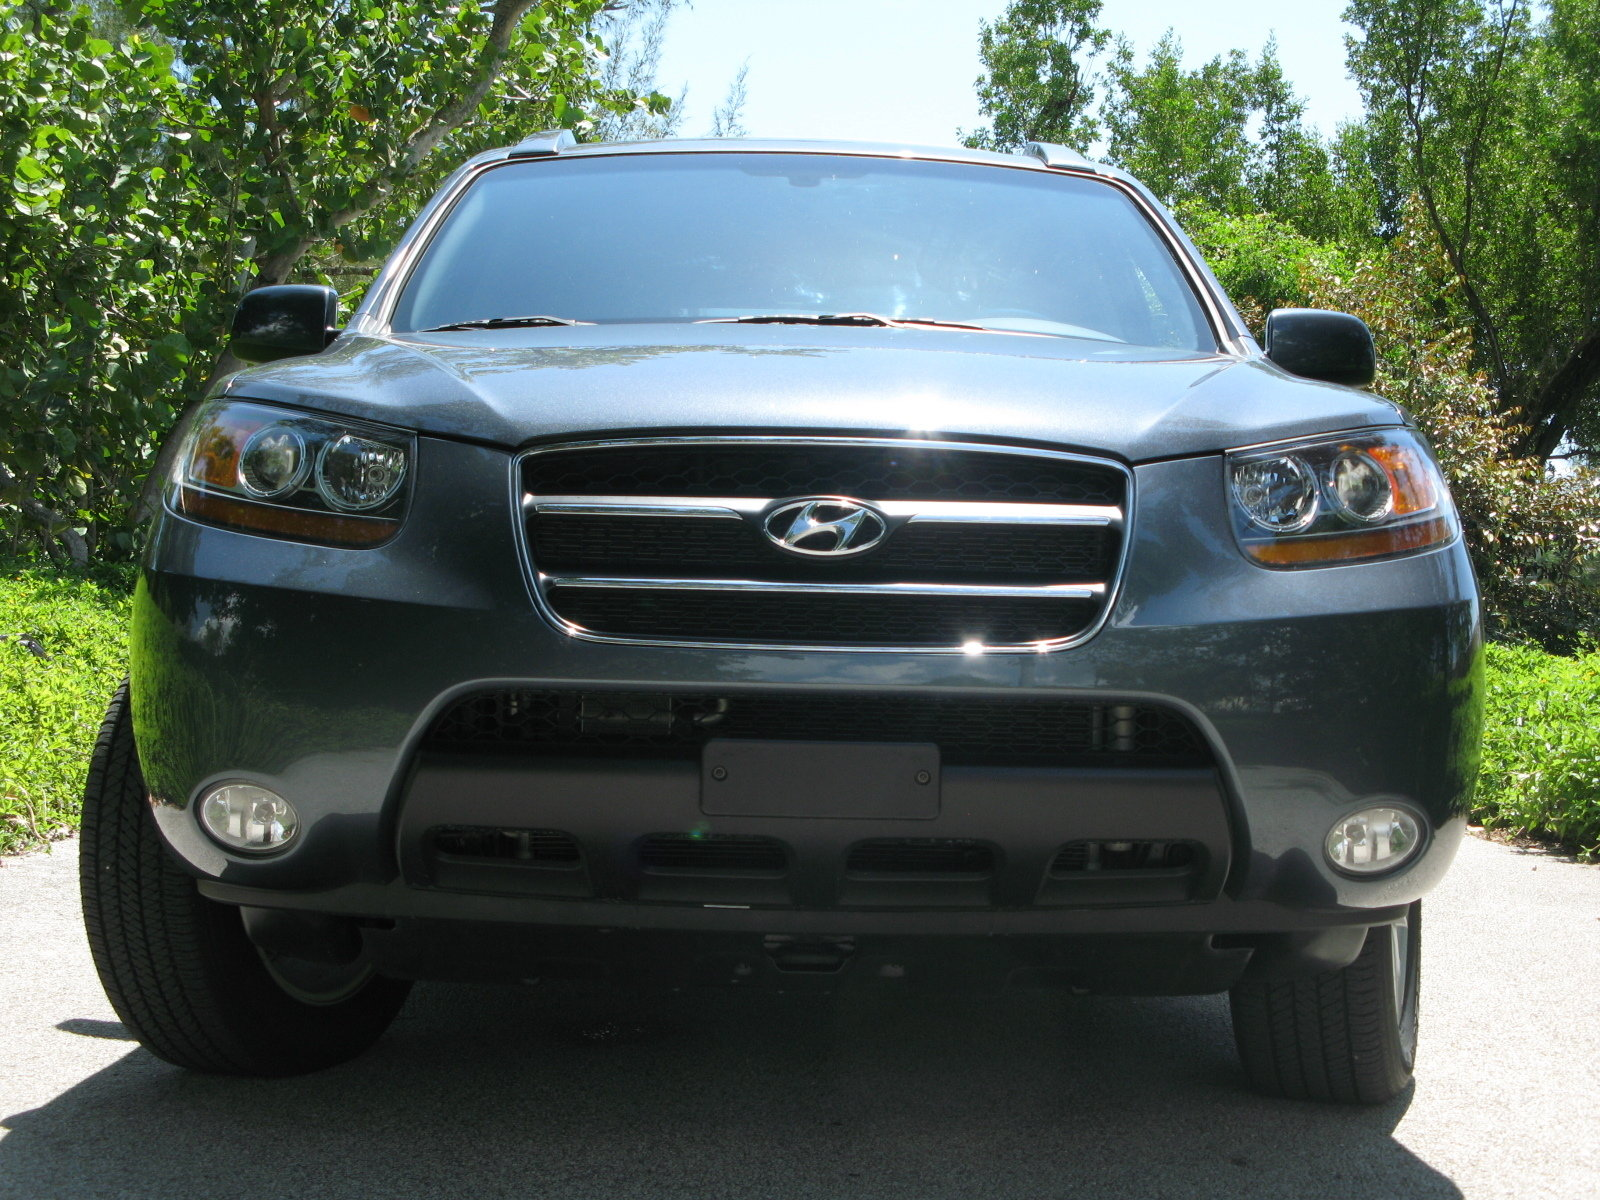 2008 hyundai santa fe limited awd picture 261824 car review top speed. Black Bedroom Furniture Sets. Home Design Ideas